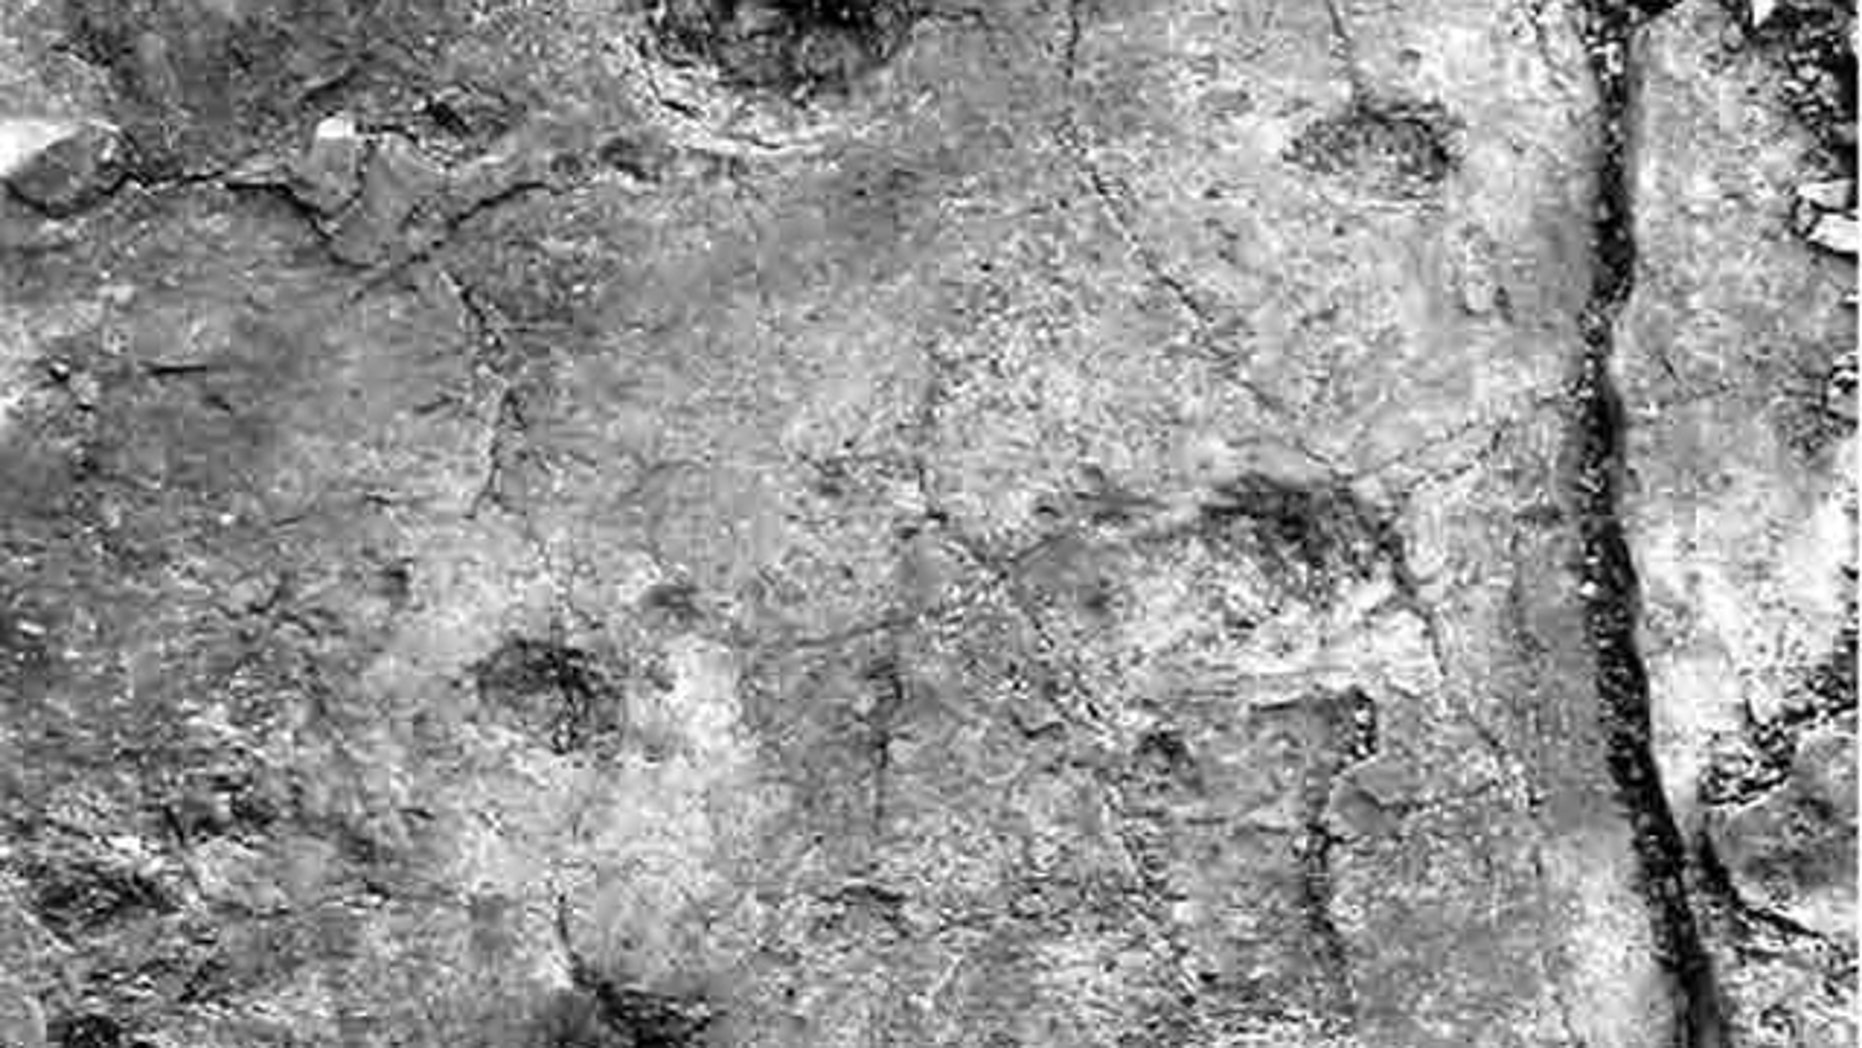 A track of fossilized 'hand' and 'foot' prints likely were made by a four-legged creature walking in a diagonal stride pattern, traveling from bottom to top as shown in the image.